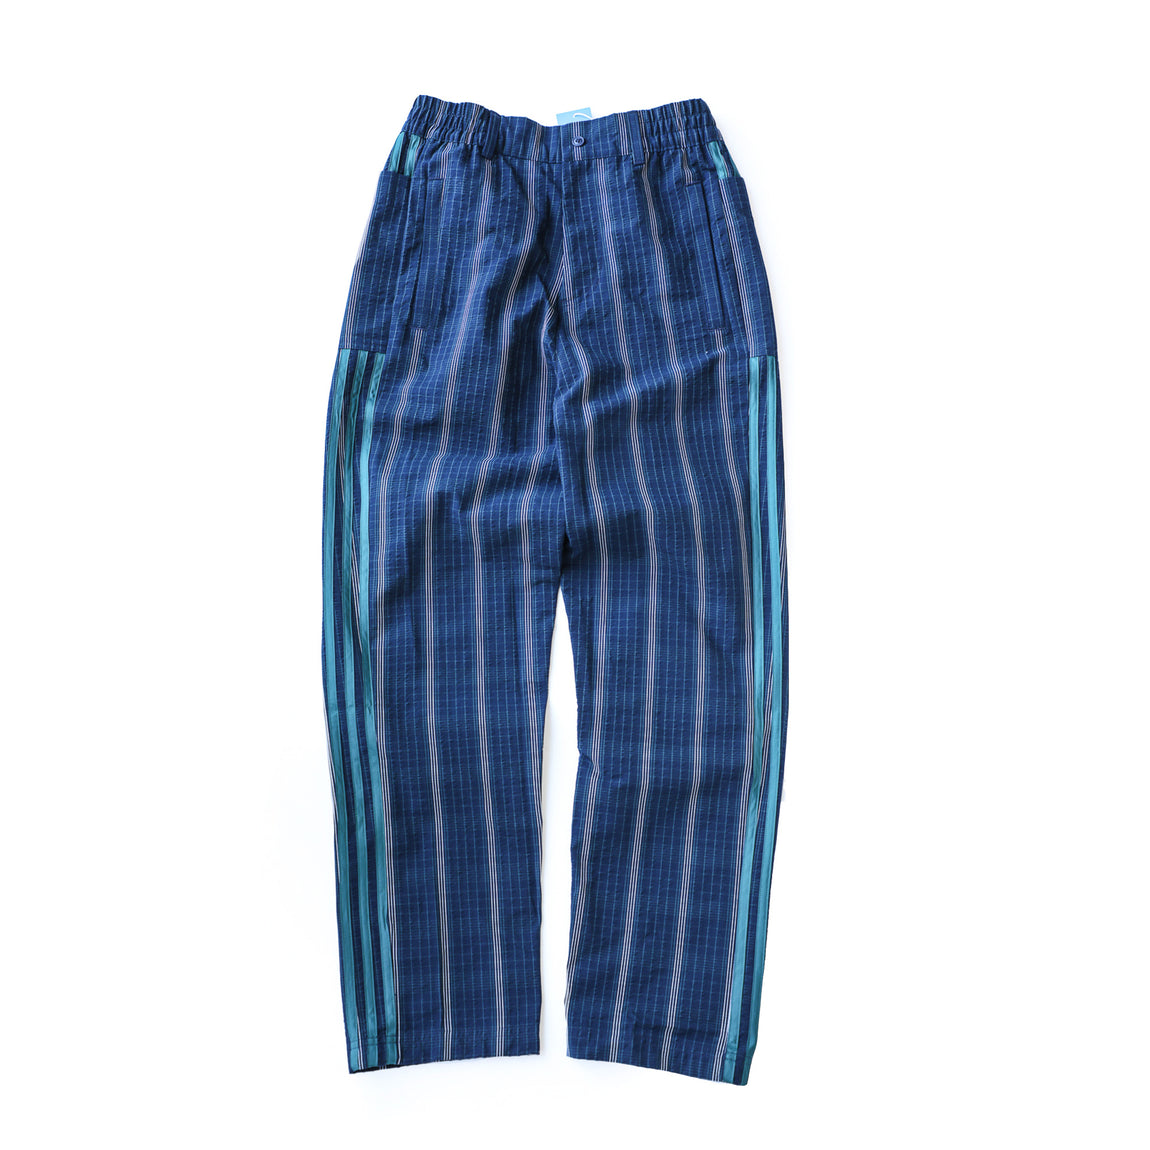 Adidas Originals Track Pants (Collegiate Navy) - Adidas Originals Track Pants (Collegiate Navy) -